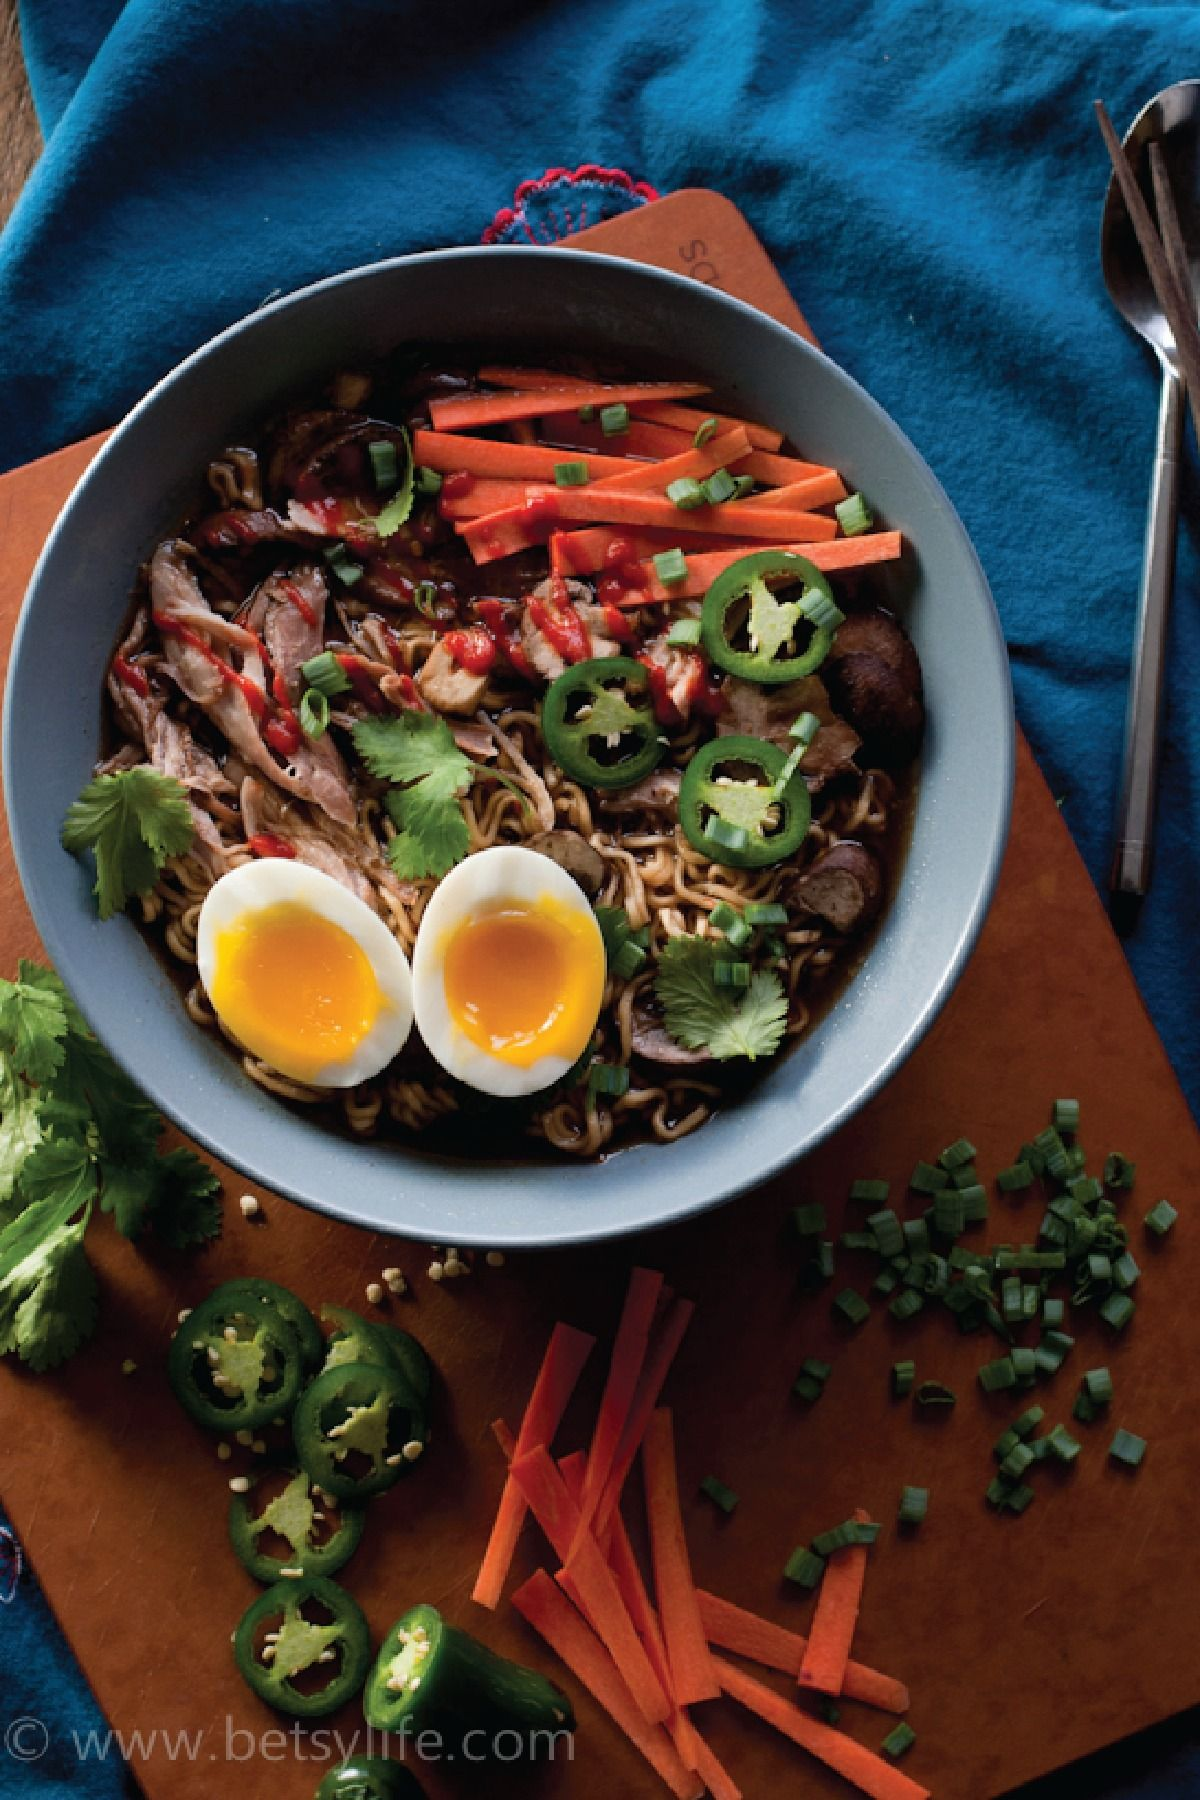 As this Slow Cooker Pork Ramen Soup recipe simmers throughout the day, your kitchen will be filled with exciting aromas and savory flavors—making this dish wonderful for serving on a crisp fall day.